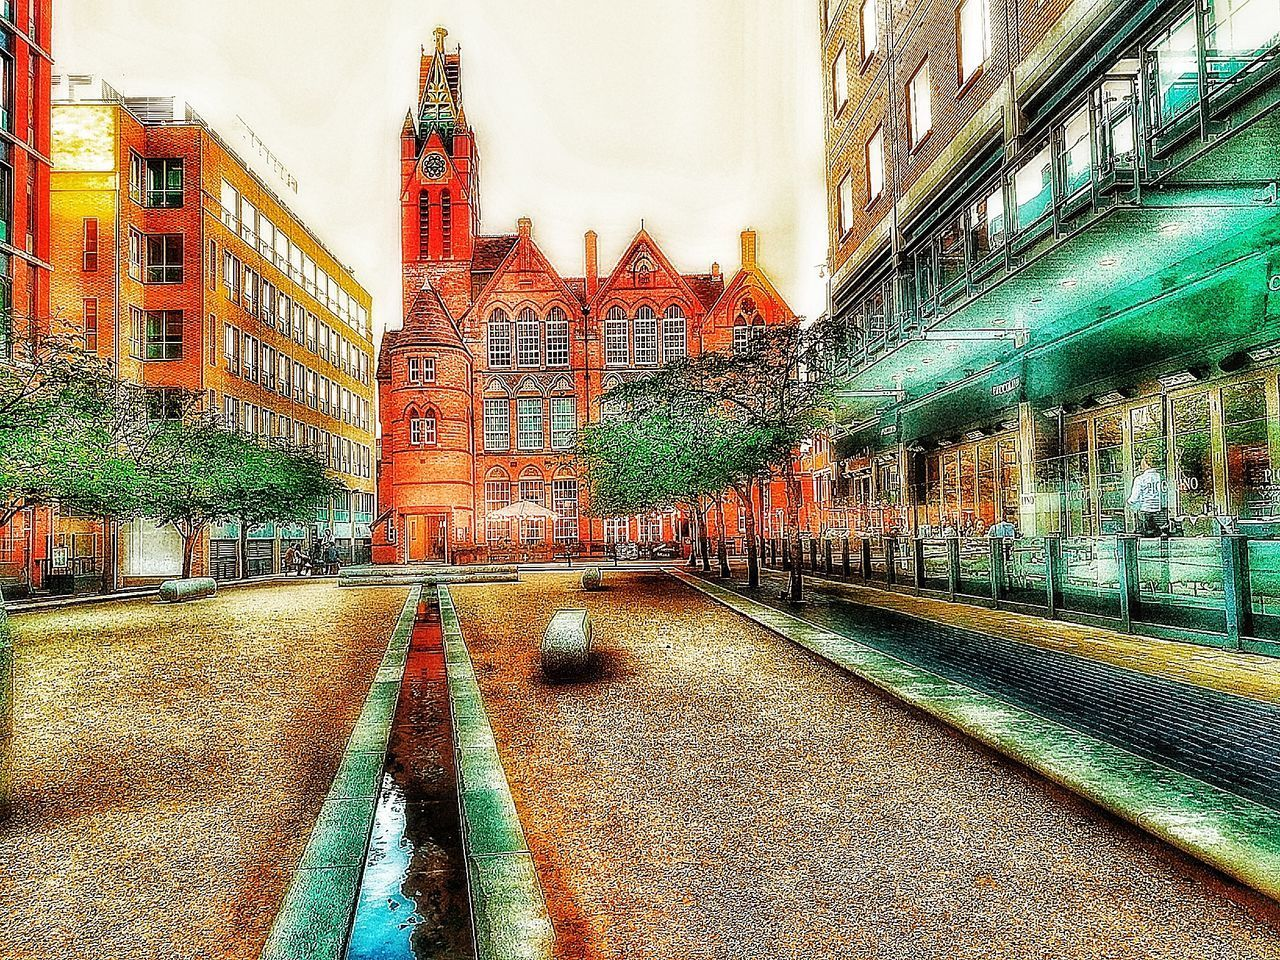 architecture, built structure, building exterior, transportation, city, no people, travel destinations, day, outdoors, sky